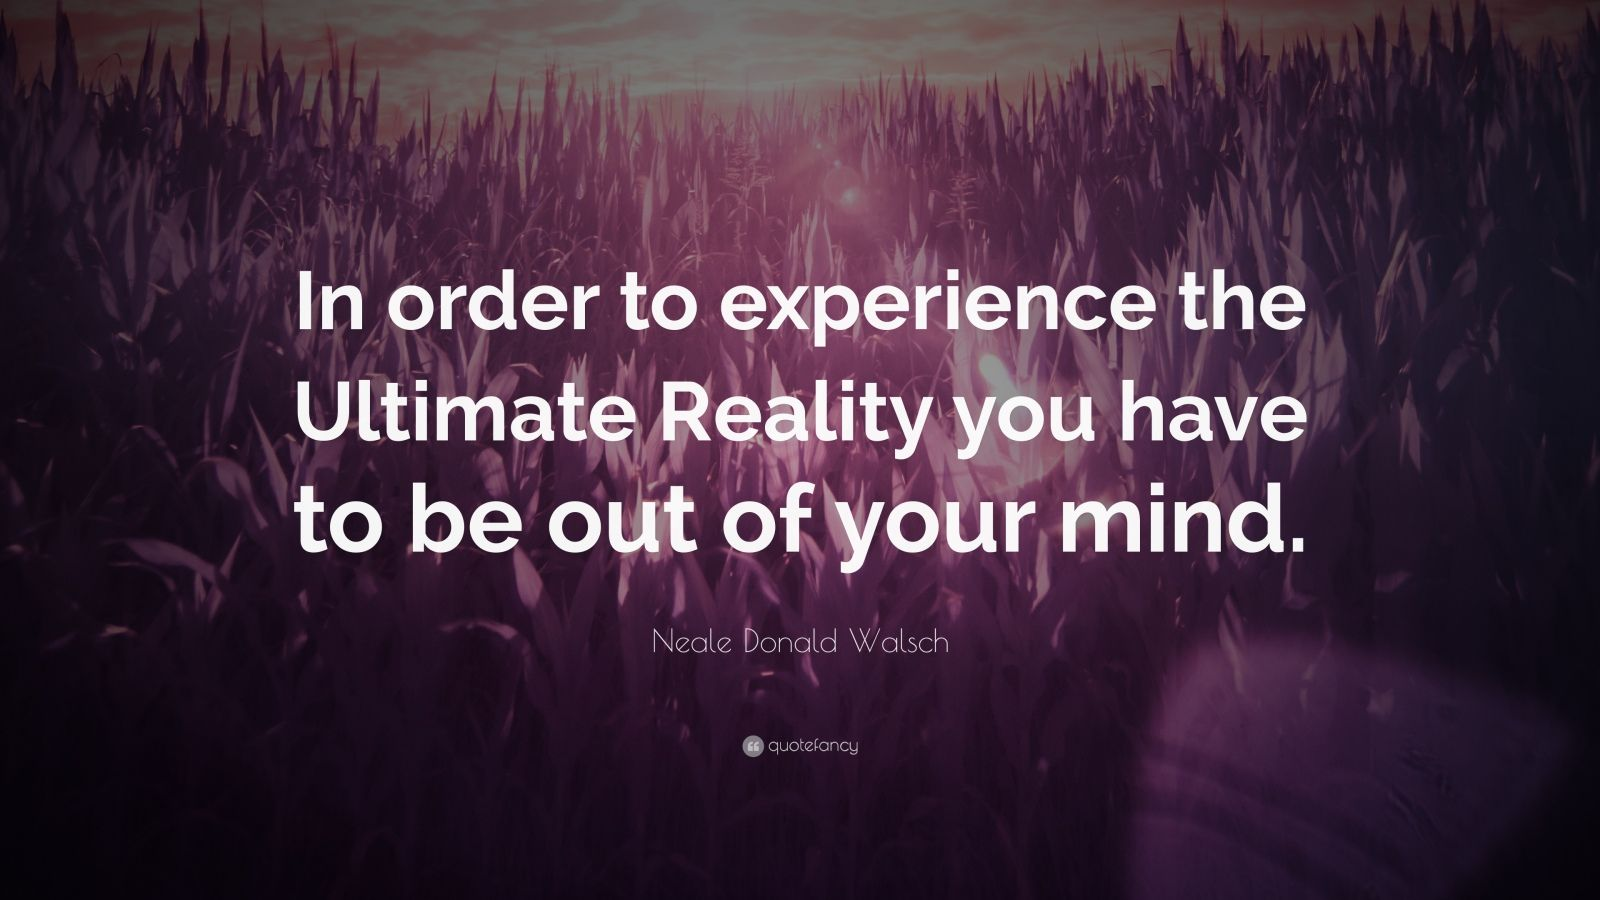 """Neale Donald Walsch Quote: """"In order to experience the Ultimate Reality you have to be out of your mind."""""""